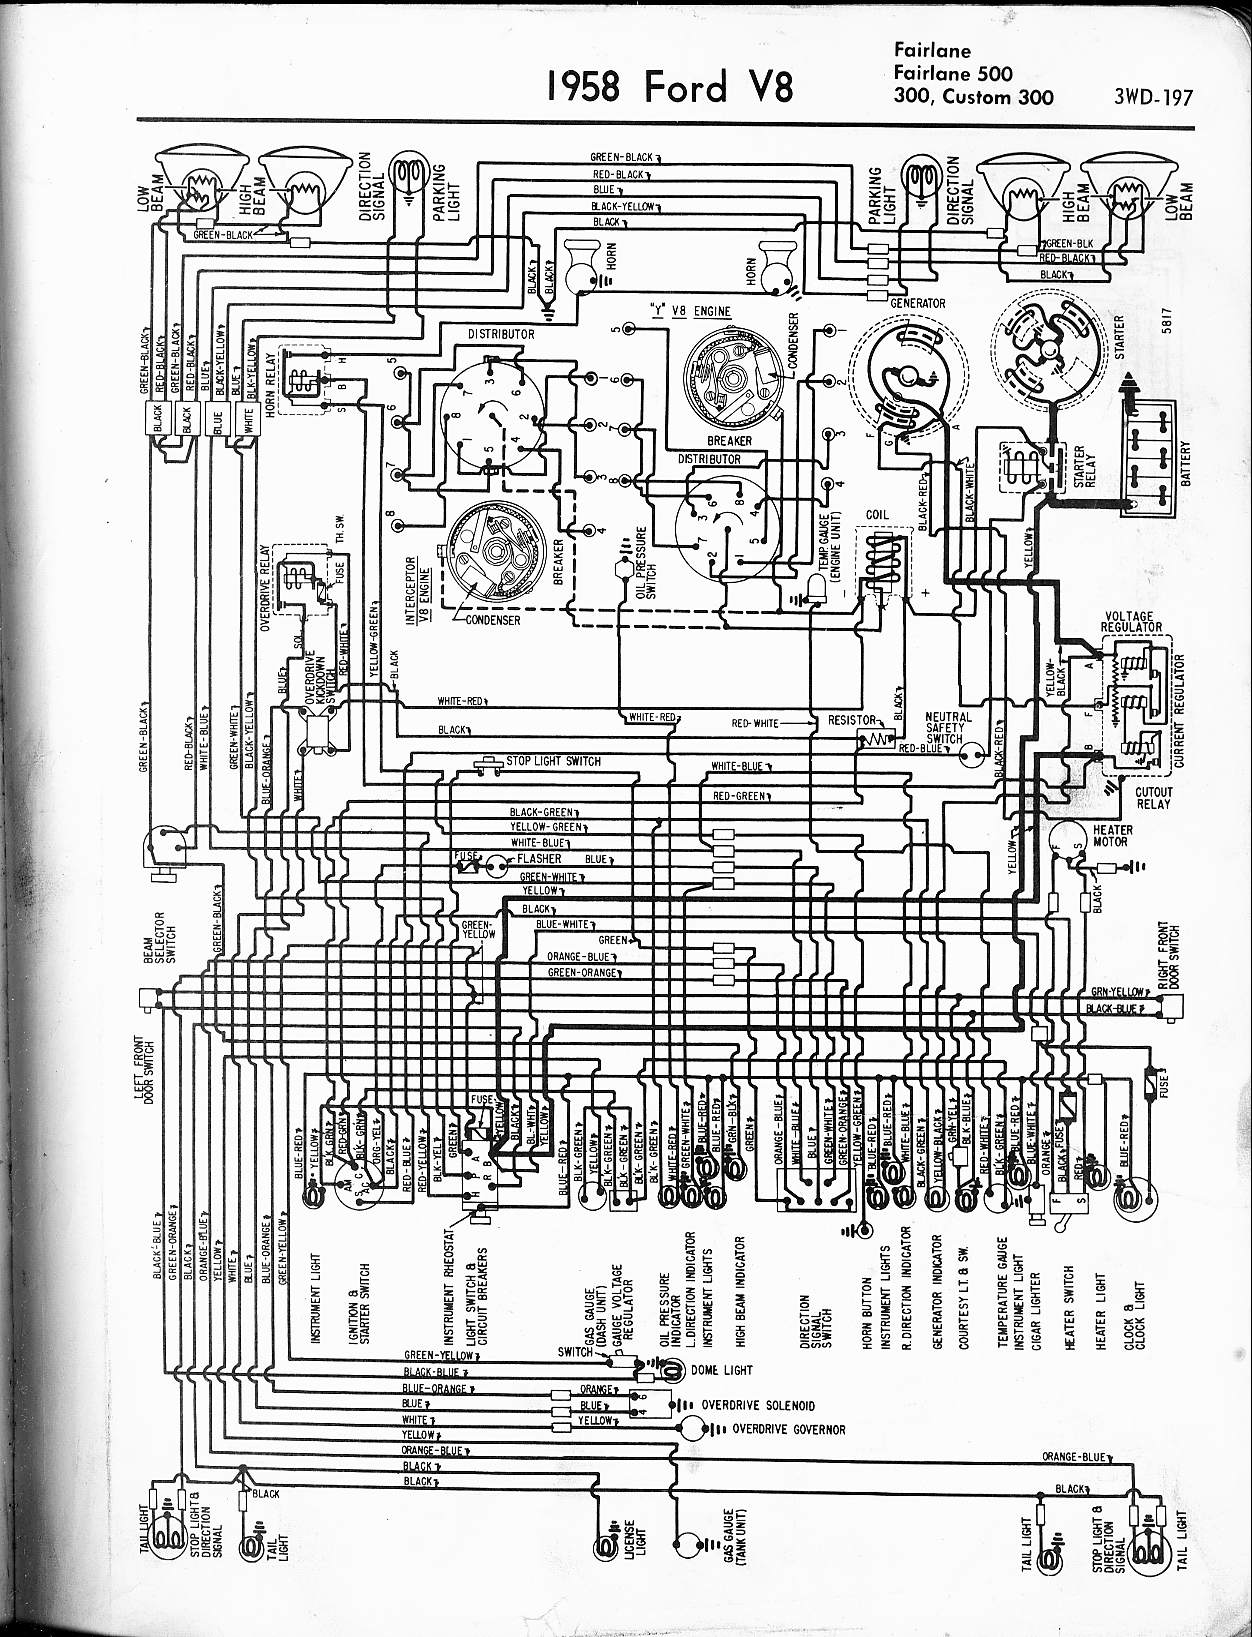 MWire5765 197 57 65 ford wiring diagrams 1966 ford truck wiring diagram at crackthecode.co